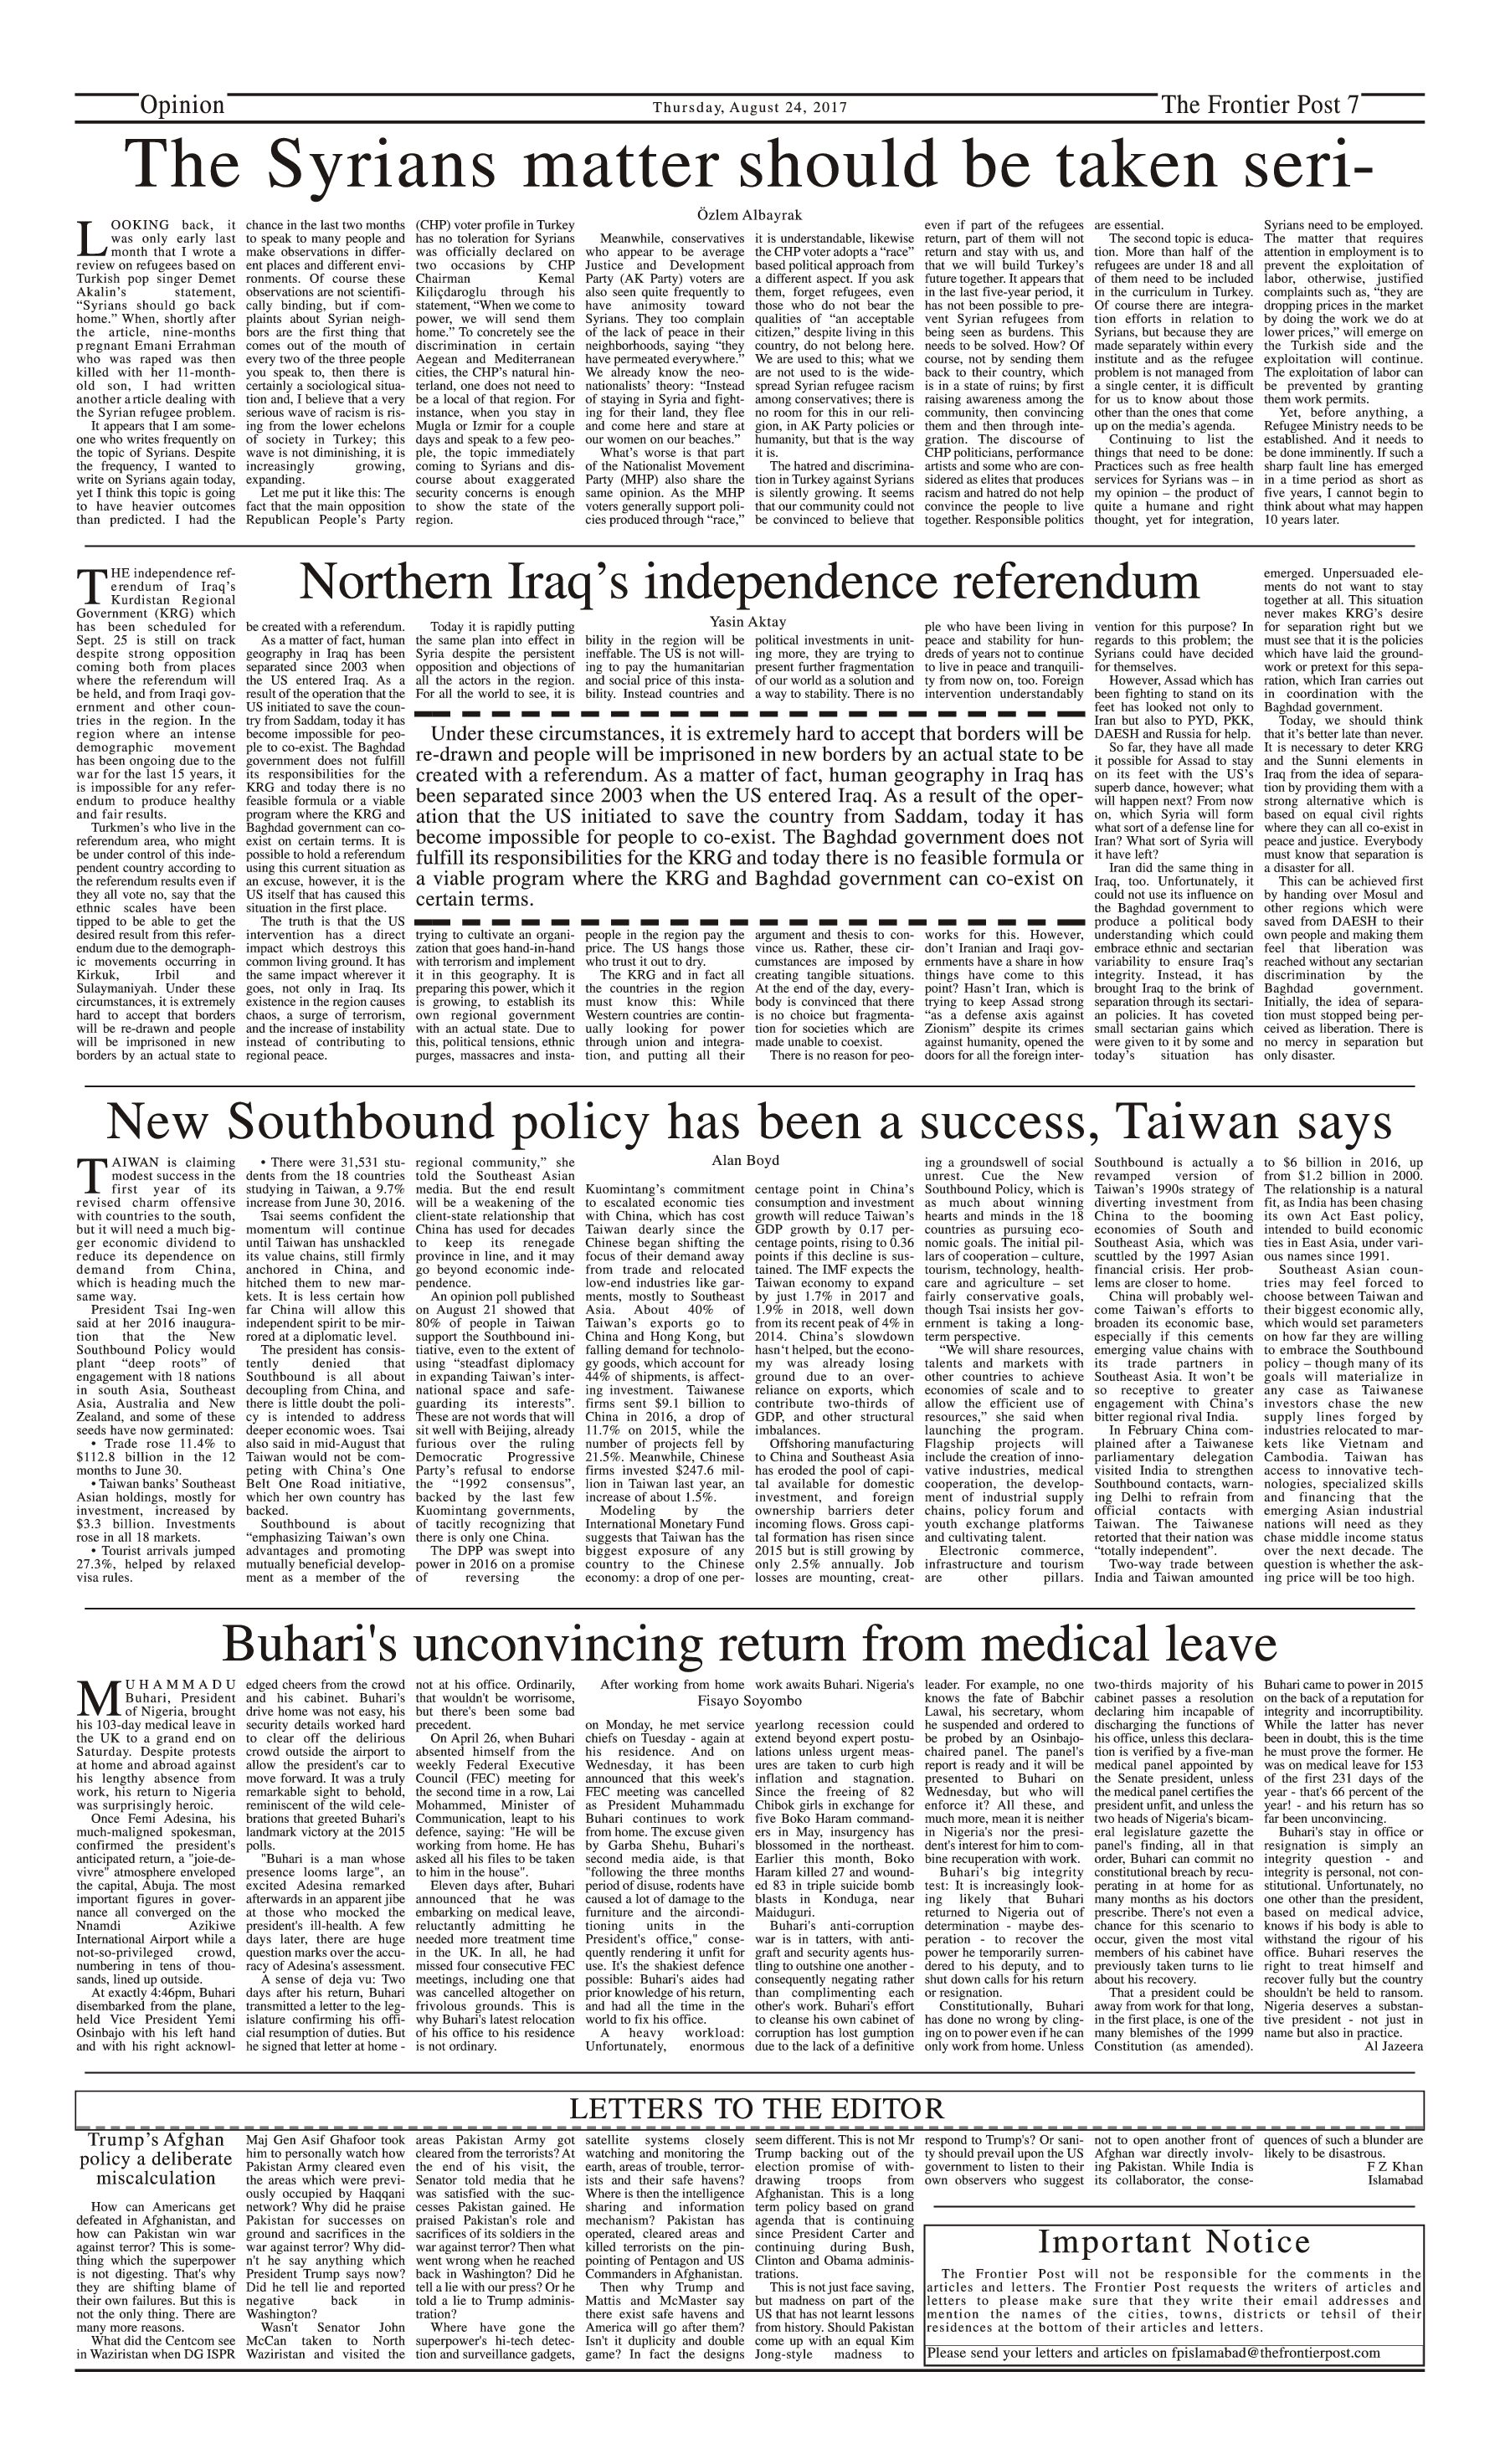 Opinion Page 24